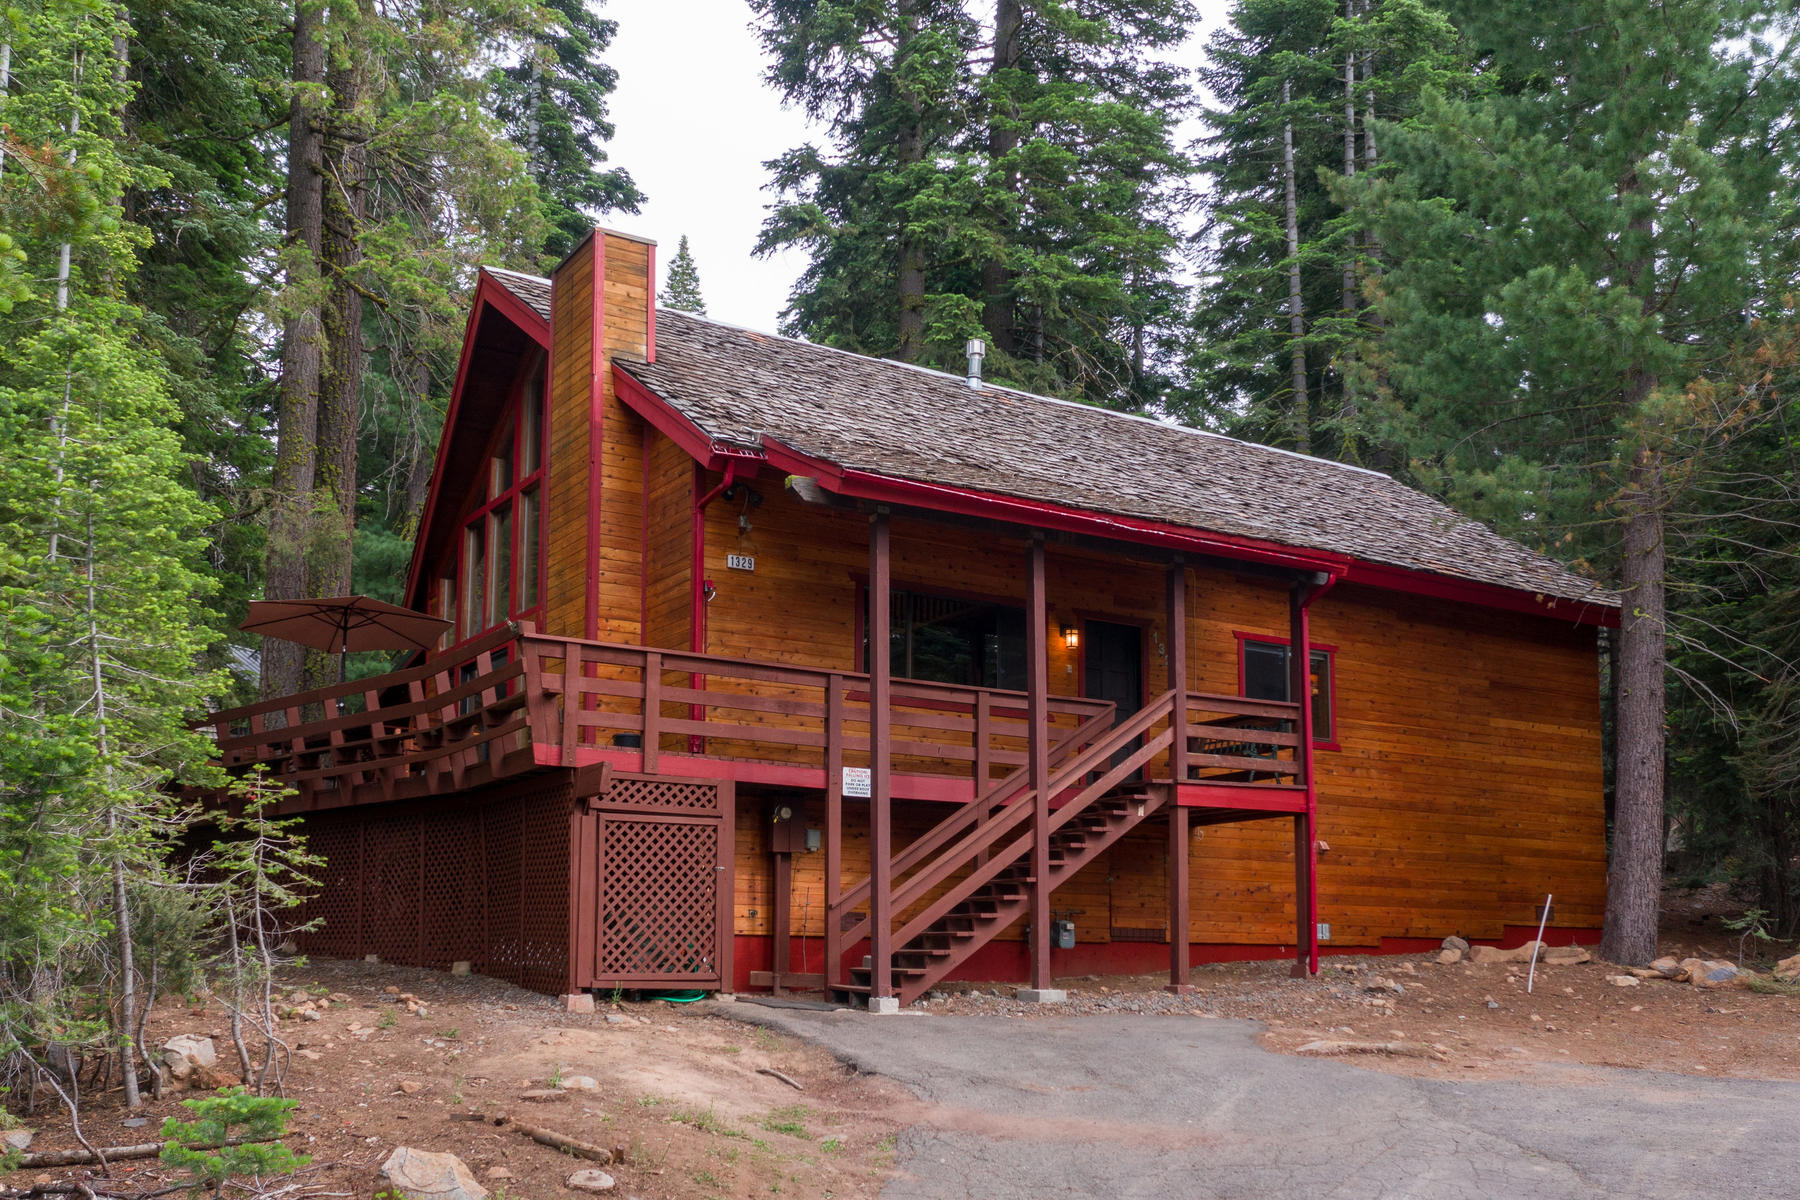 Additional photo for property listing at 1329 Kings Way, Tahoe Vista, CA 96148 1329 Kings Way Tahoe Vista, California 96148 United States